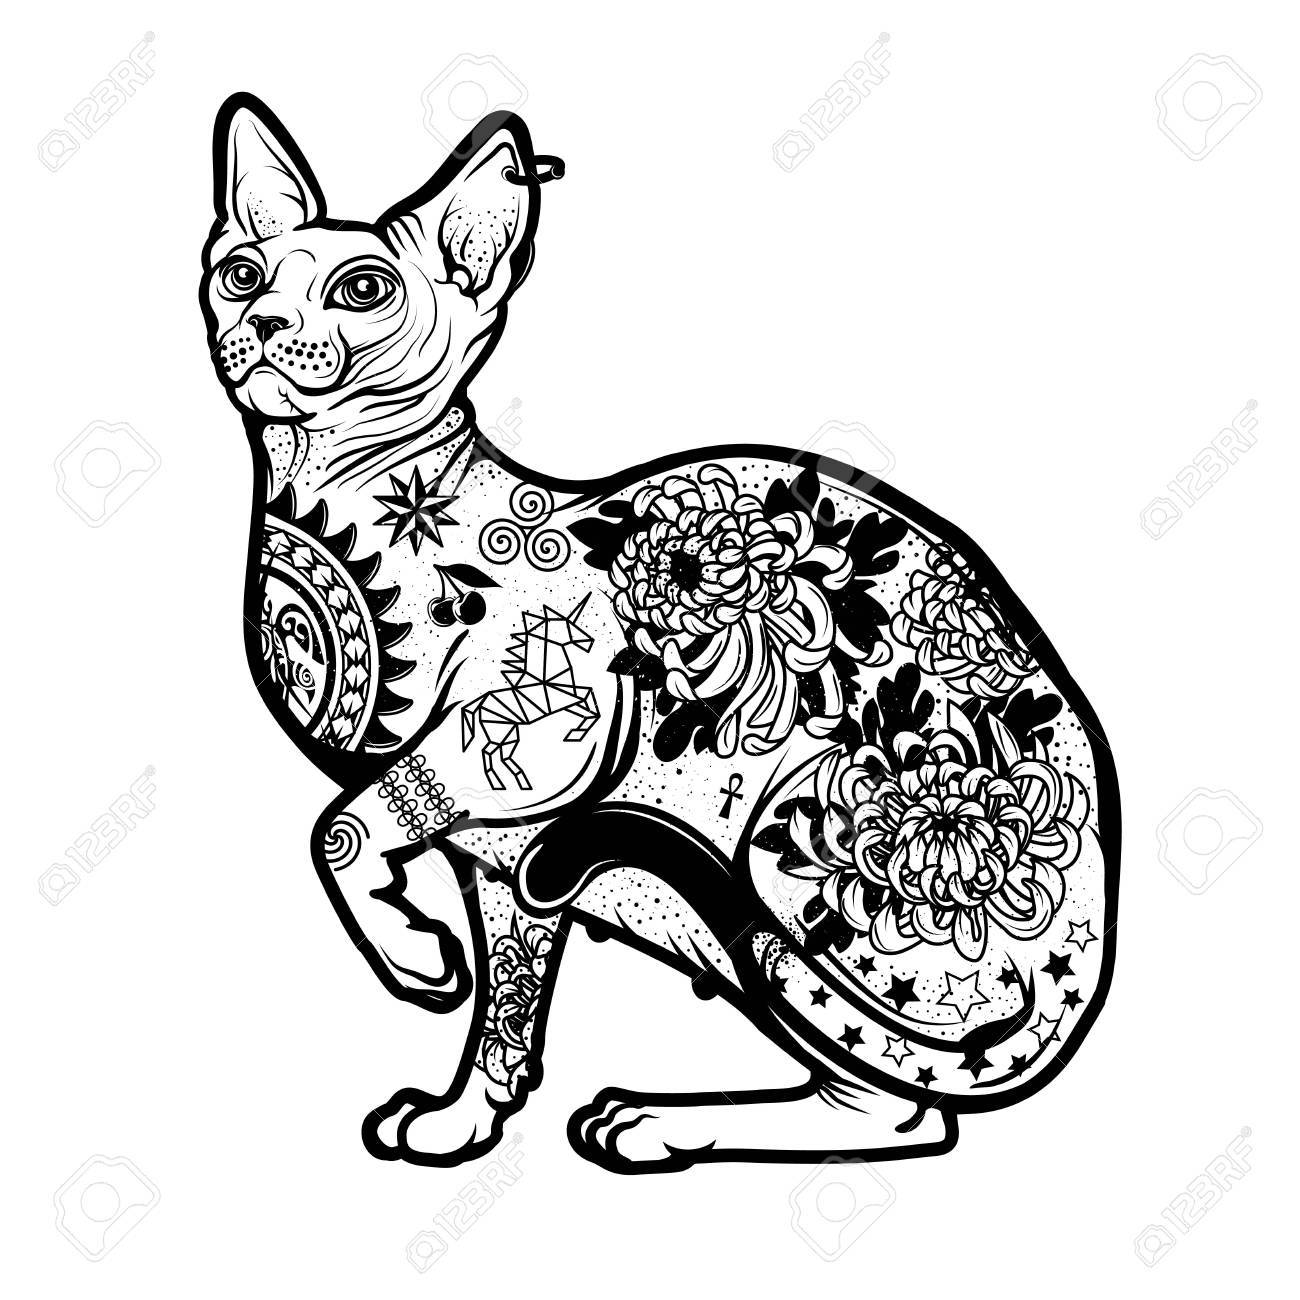 1300x1300 Vintage Cat Tattoo Design Royalty Free Cliparts Vectors And Stock